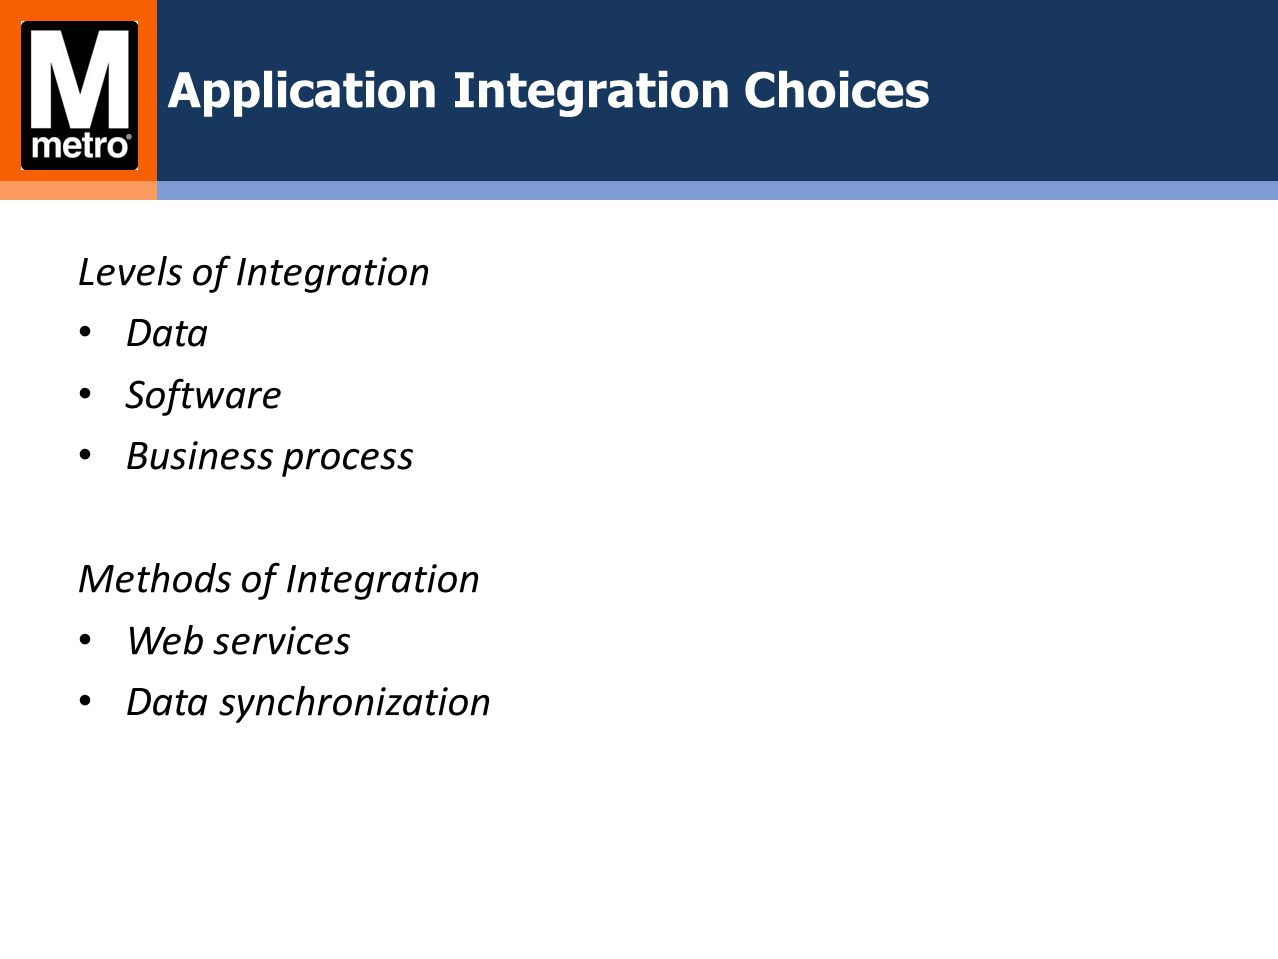 Application Integration Choices Levels of Integration Data Software Business process Methods of Integration Web services Data synchronization